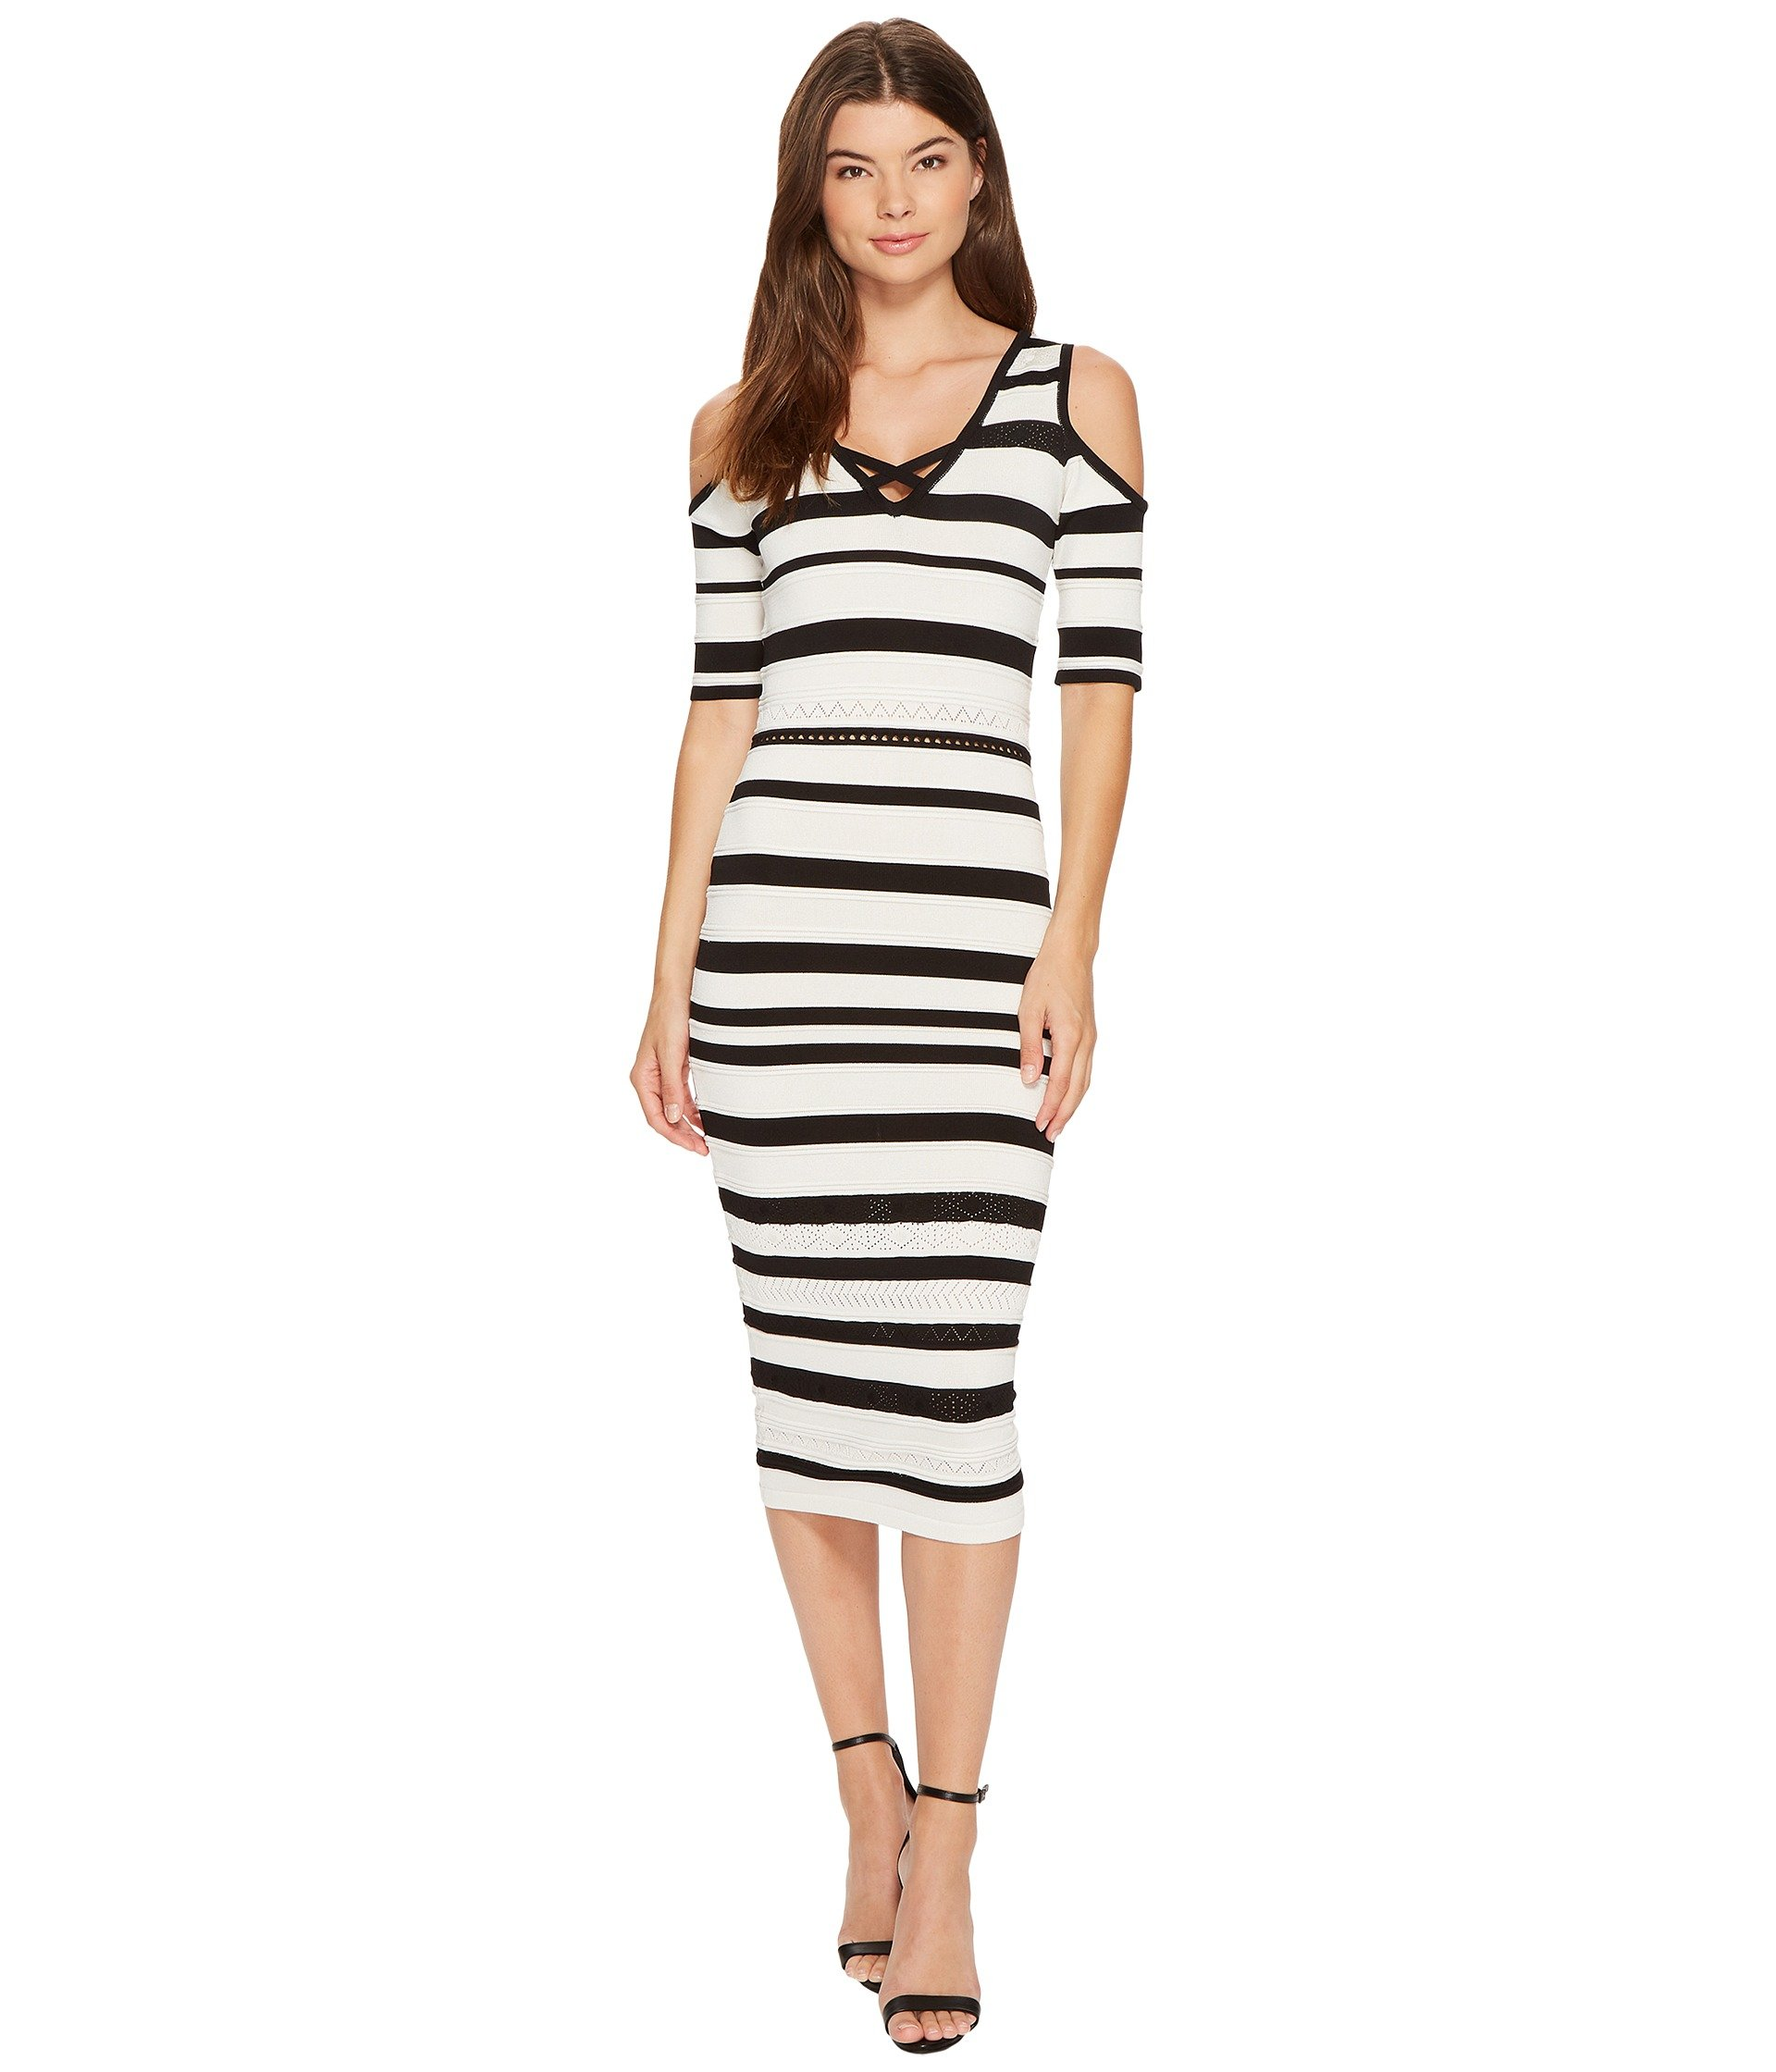 Vestido para Mujer XOXO Pointelle Stitch Stripe Midi Dress  + XOXO en VeoyCompro.net